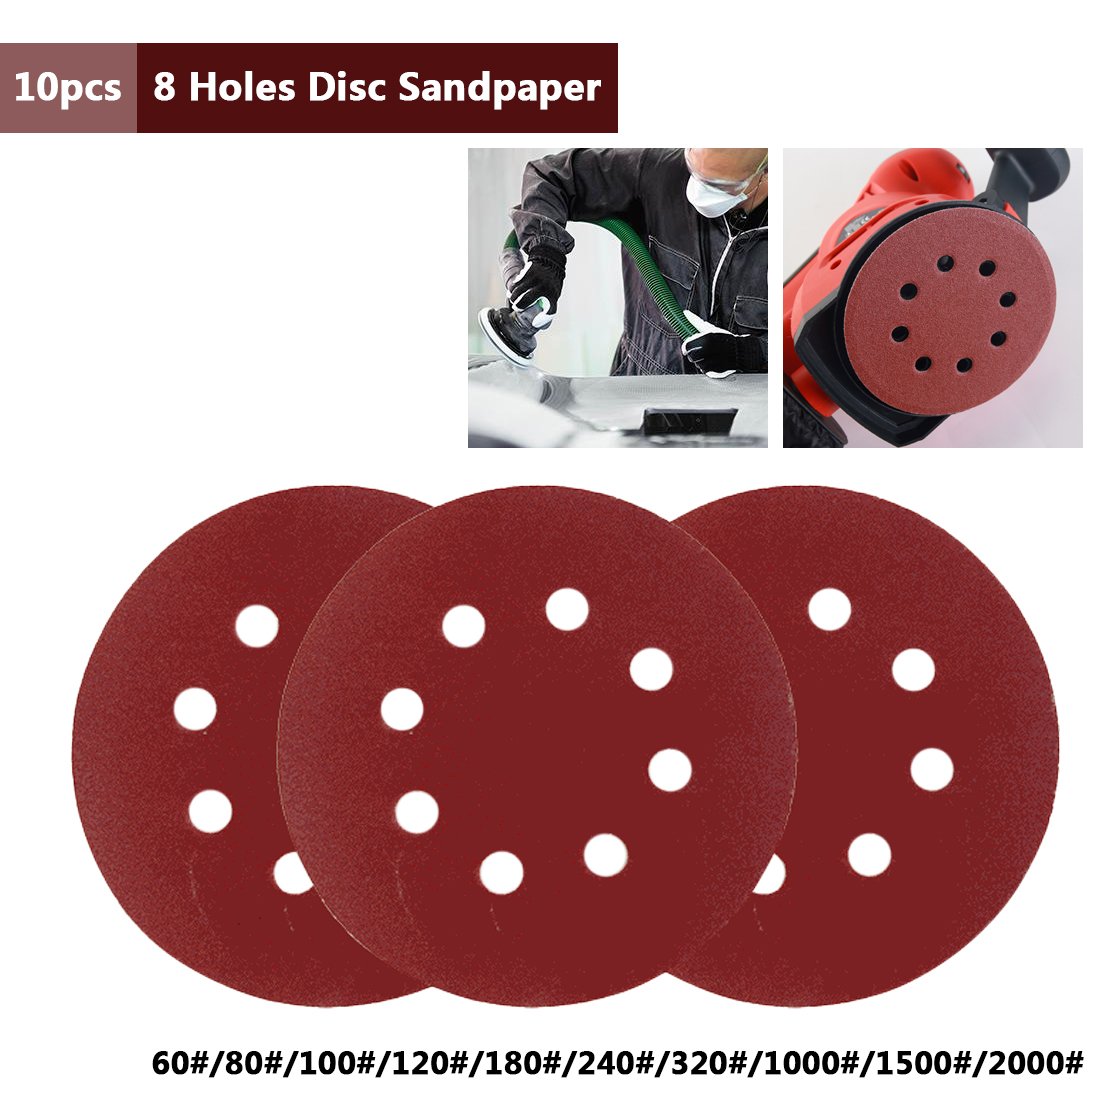 10pcs 5Inch 125mm Round Sandpaper Eight Hole Disk Sand Sheets Grit 60-2000 Hook And Loop Sanding Disc Abrasives For Polish